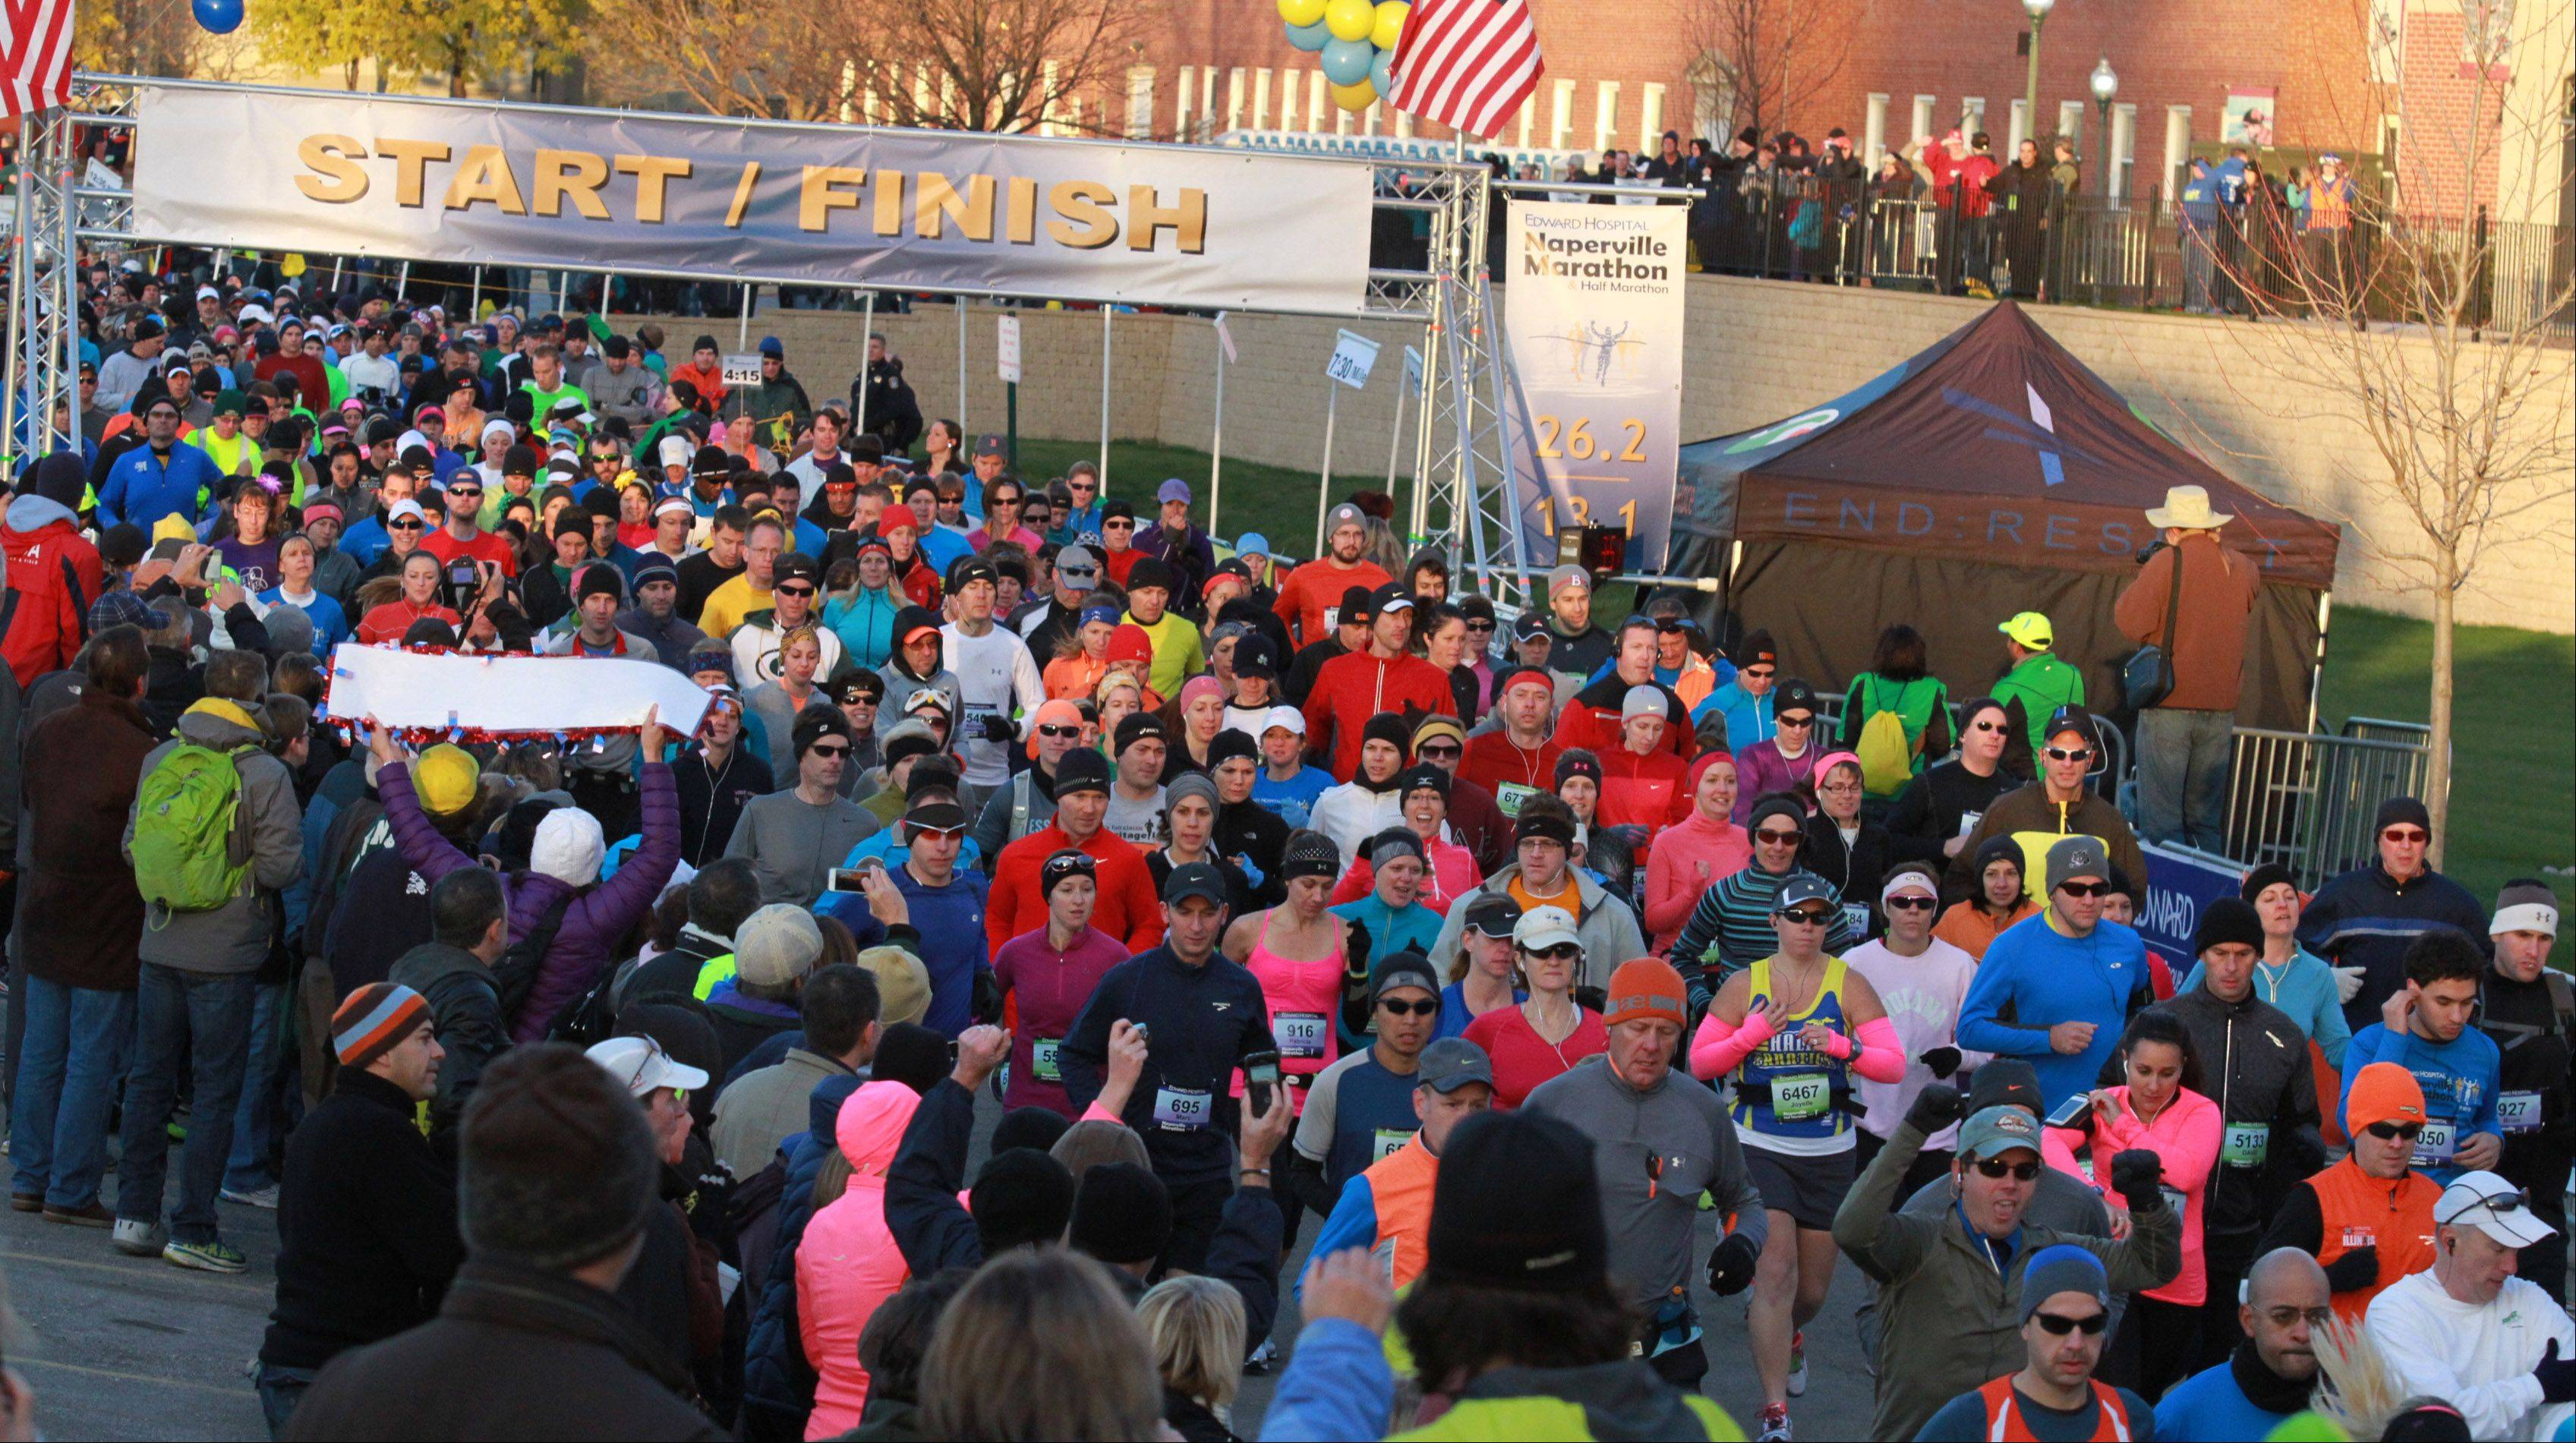 Runners at the start of the inaugural Edward Hospital Naperville Marathon and Half Marathon on Sunday, November 10, 2013.